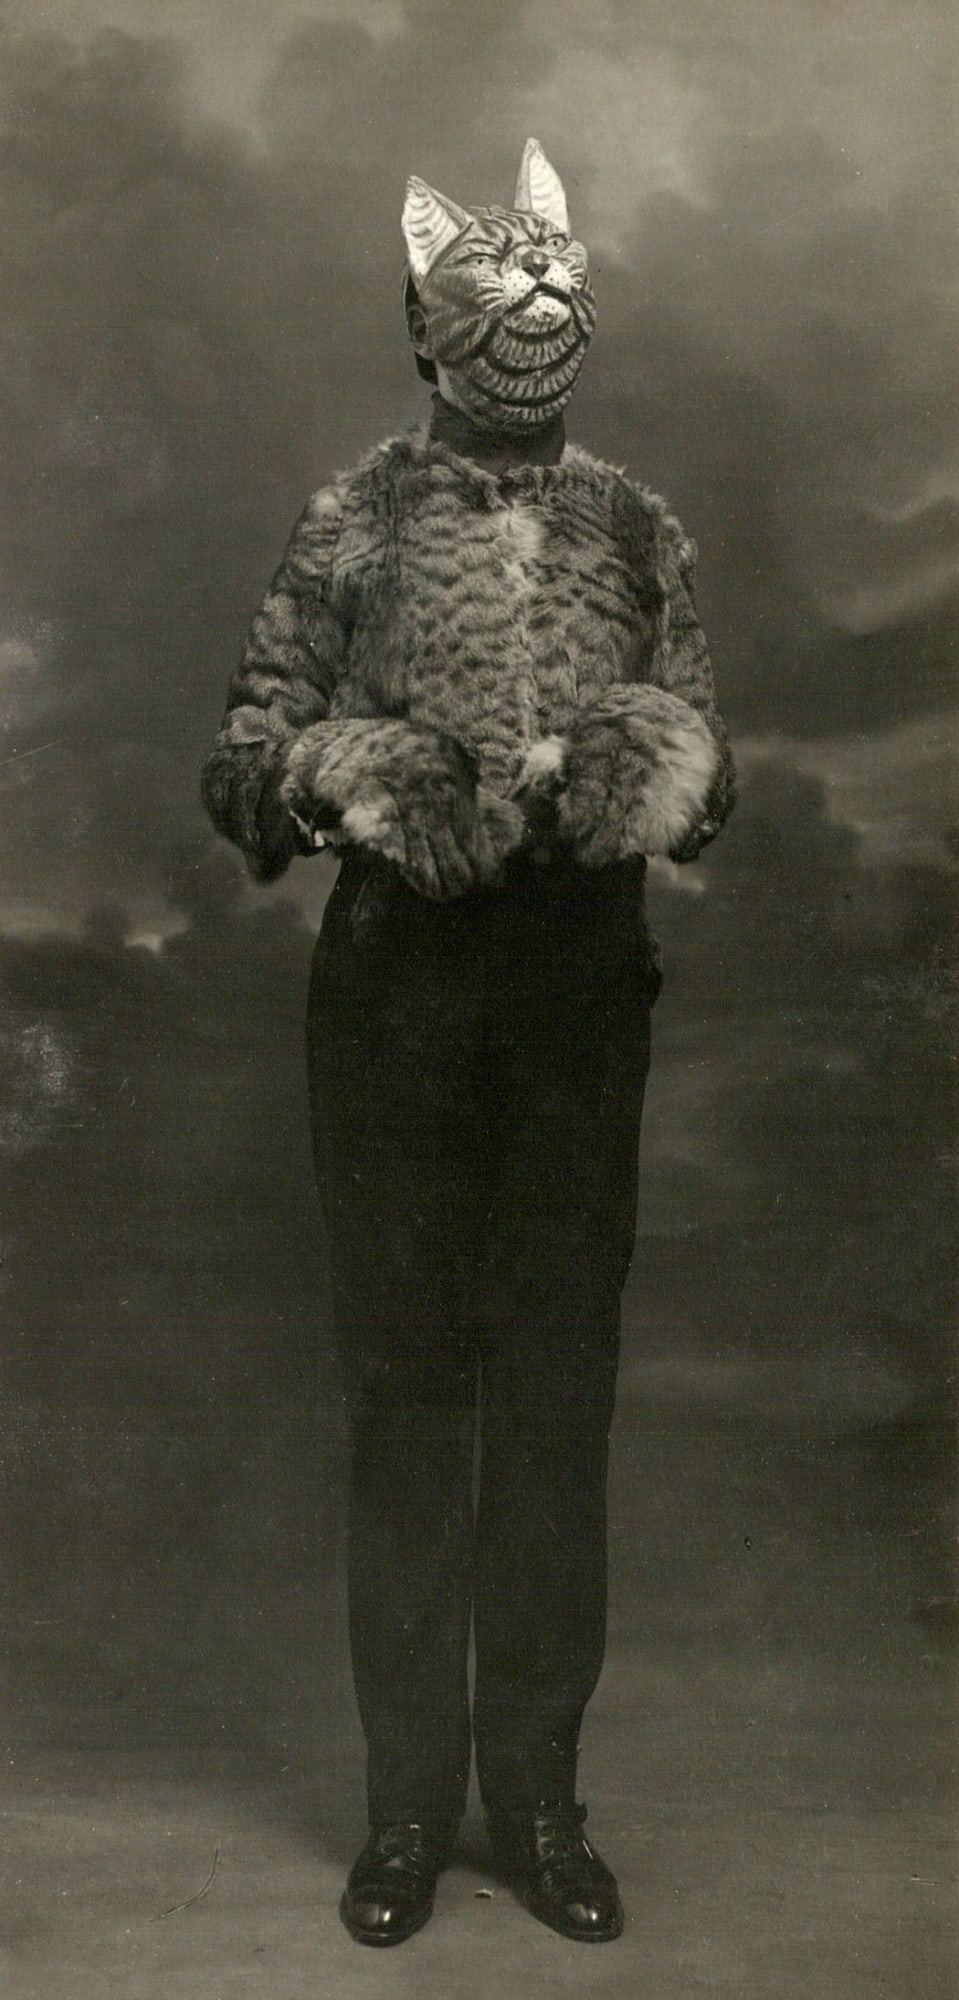 1920's photograph of Halloween cat costume